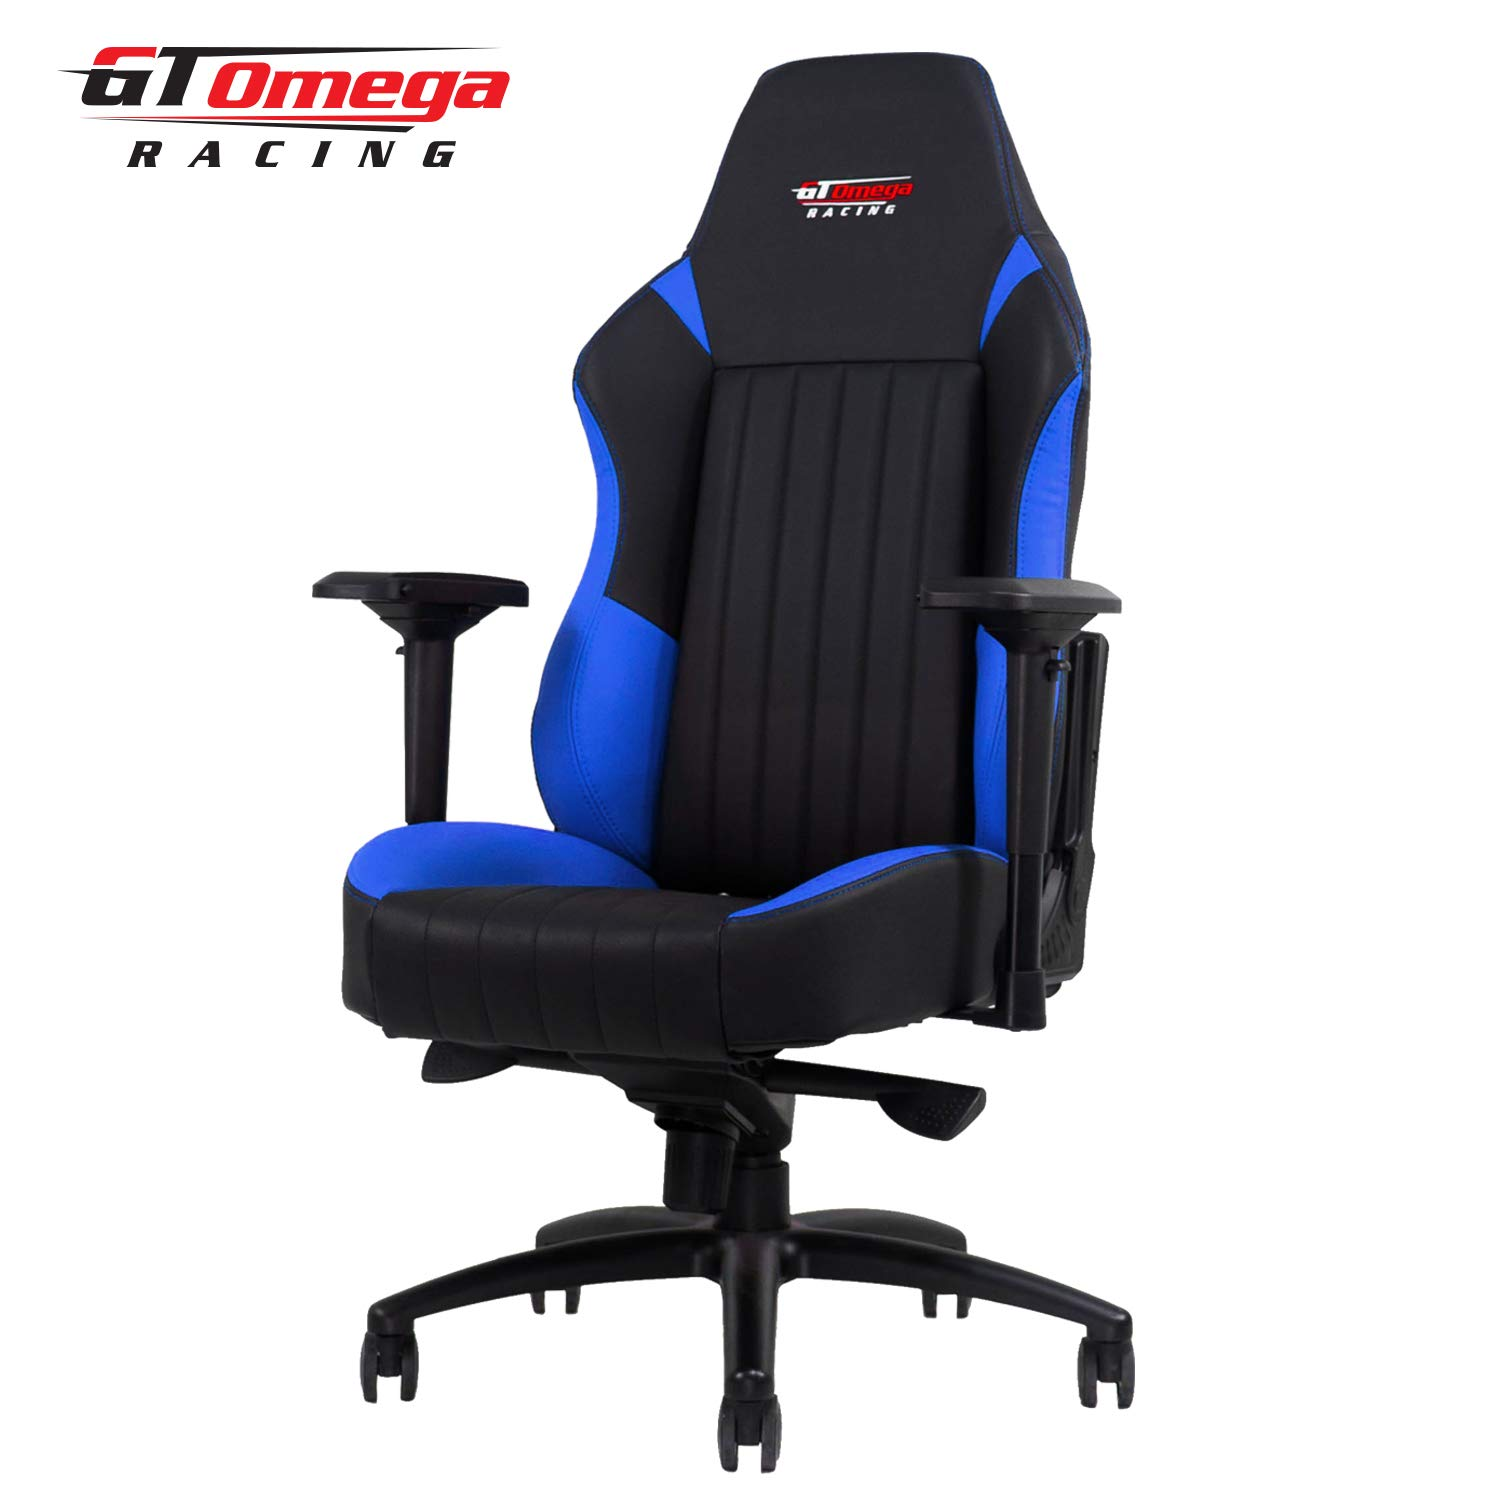 GT OMEGA EVO XL Racing Gaming Chair with Lumbar Support – Heavy Duty Ergonomic Office Desk Chair with 4D Adjustable Armrest Recliner – PVC Leather Esport Seat for Racing Console – Black Blue